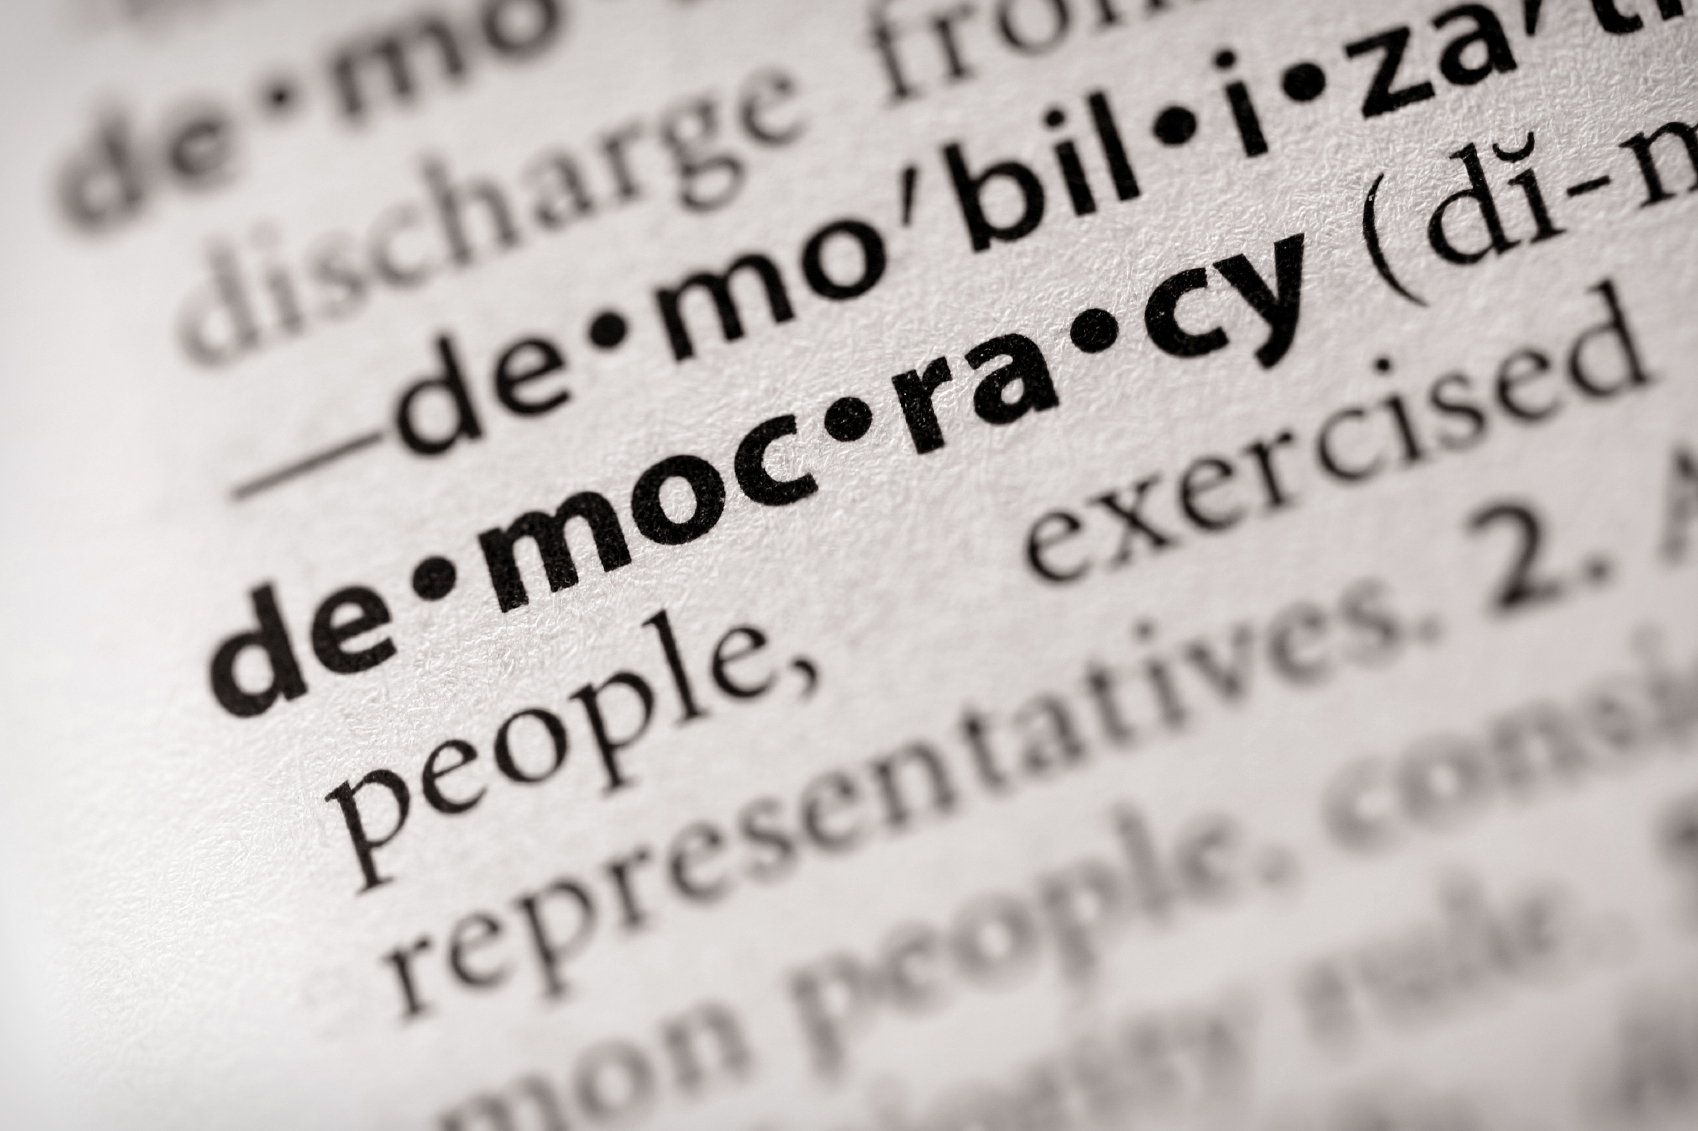 jeffersonian democracy vs jacksonian democracy essay Jeffersonian vs jacksonian democracy on studybaycom - when it comes to jackson and jefferson, online marketplace for students.